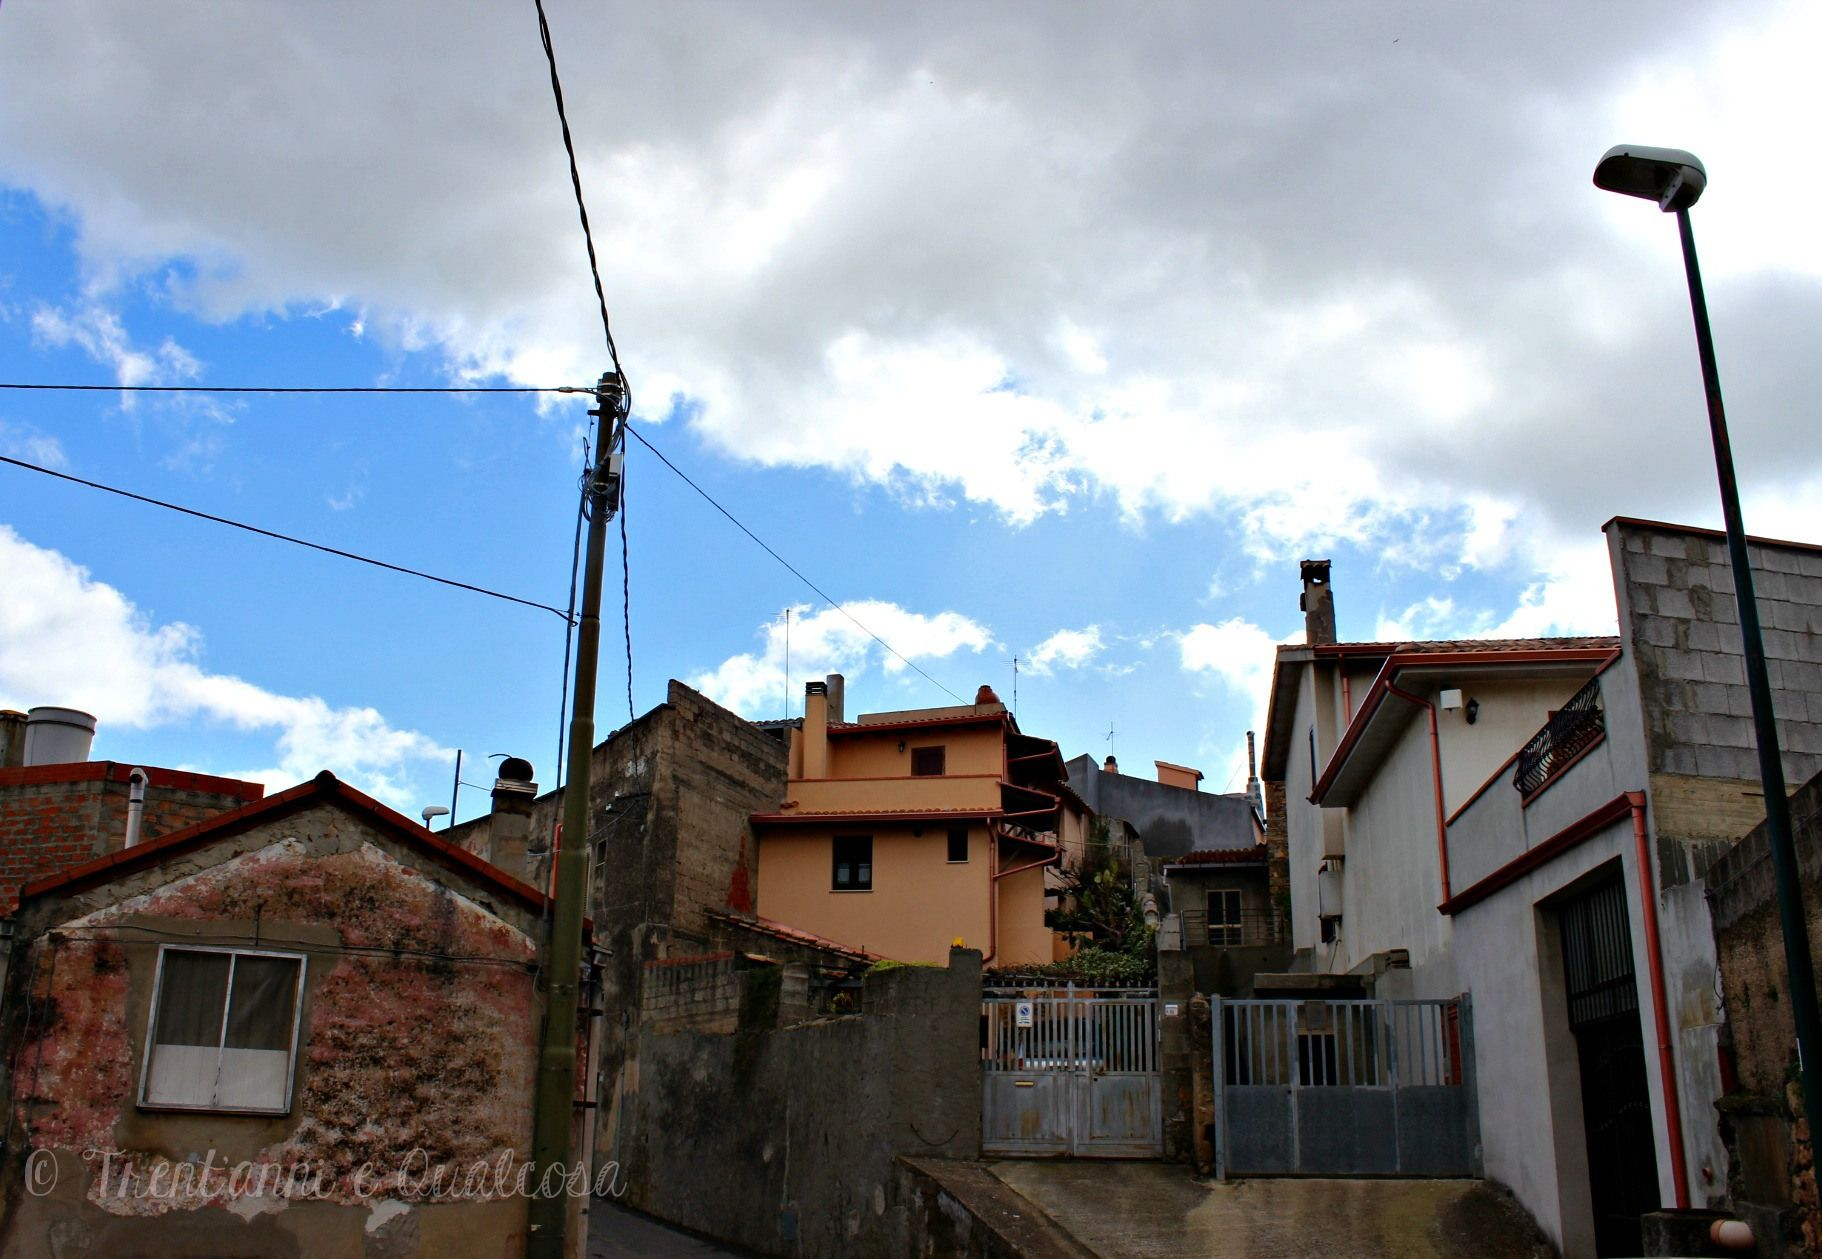 Easter Sky in my town ©trentanniequalcosa